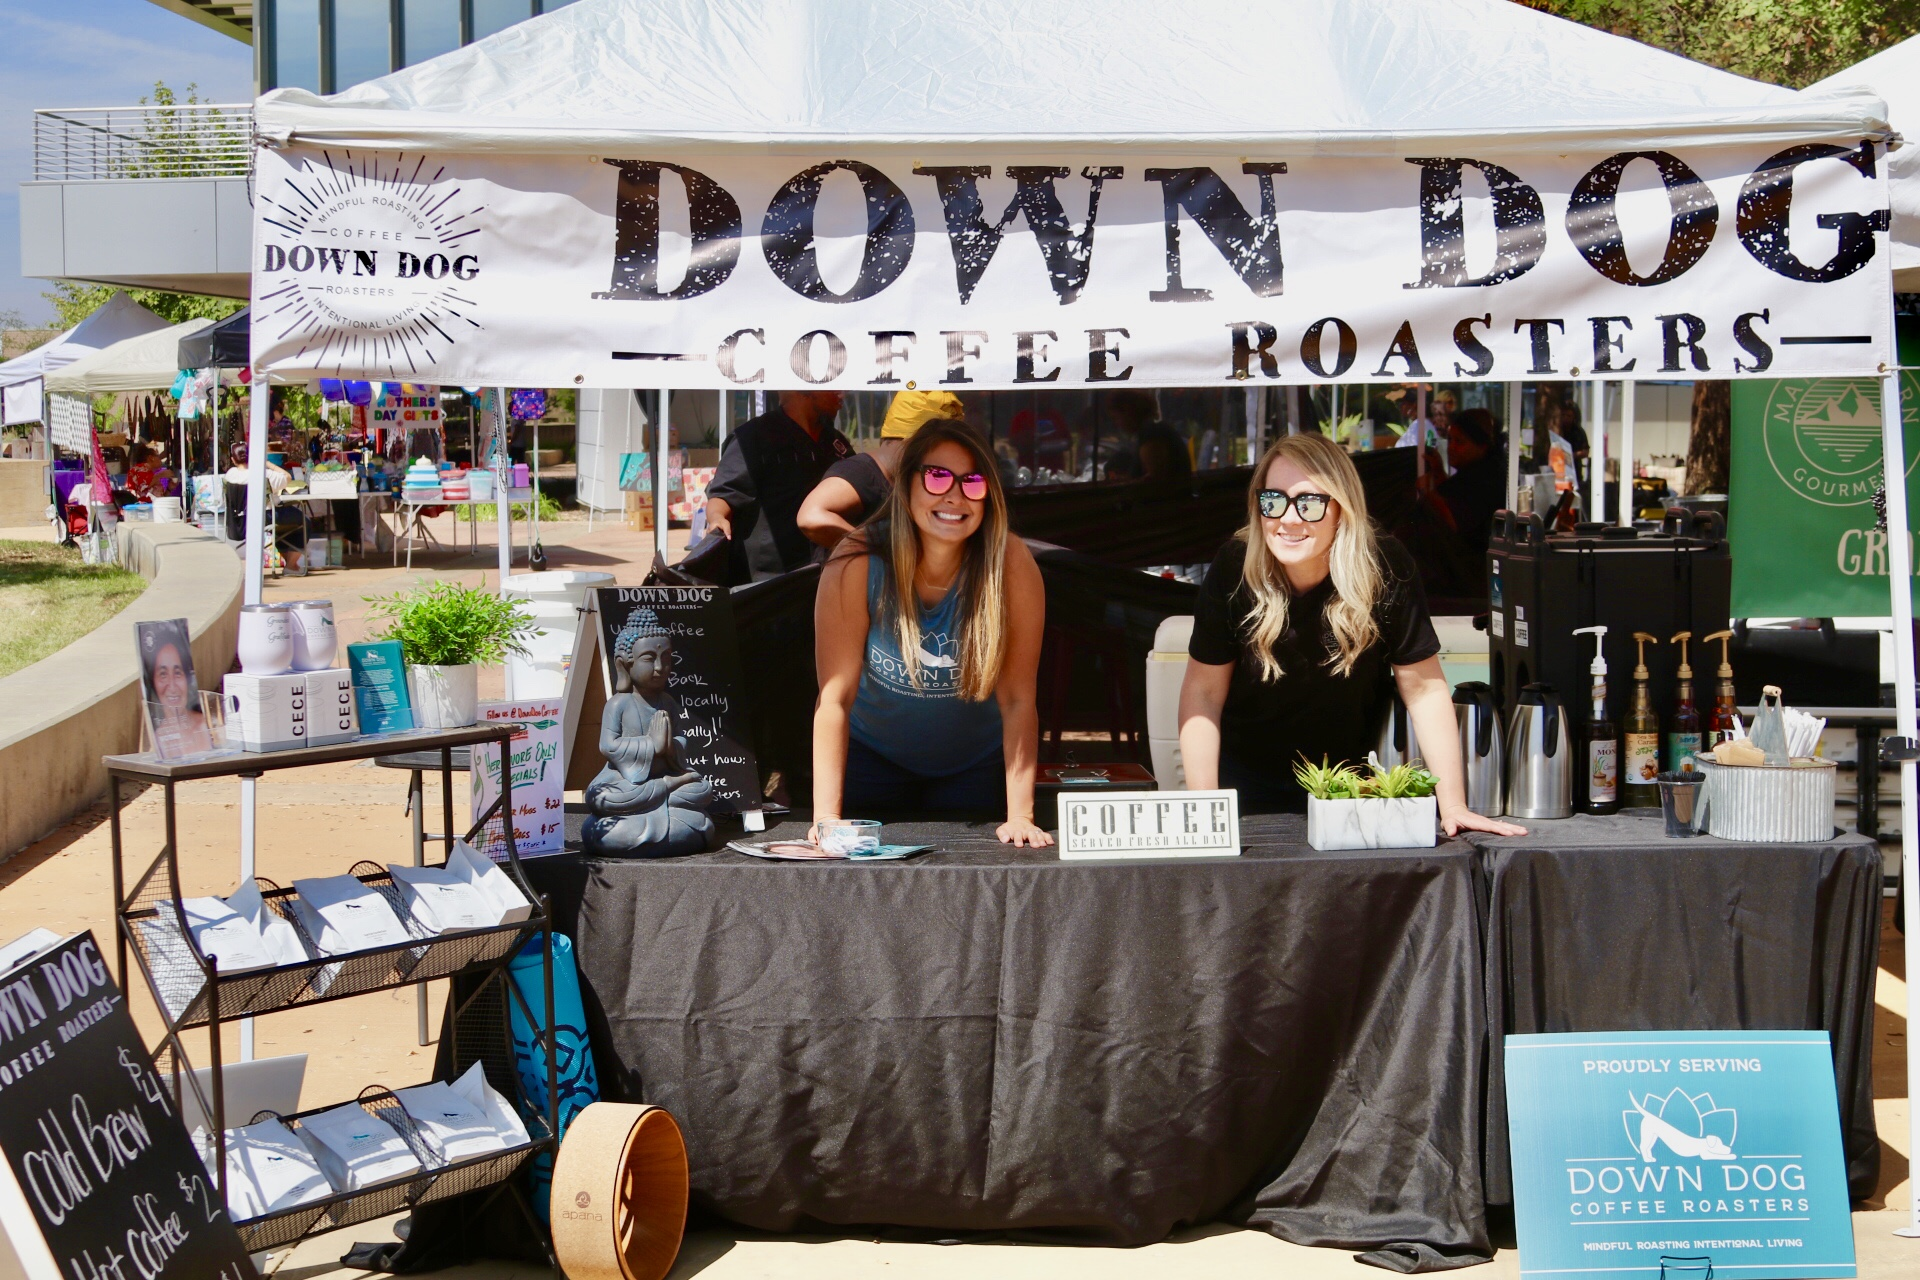 Have Down Dog Coffee Served at Your Next Event! - We love community, people, and making new friends. If you are interested in having Down Dog Coffee available at your next event we have several options to fit your needs.Please feel free to contact us and we will be happy to chat and find what's right for you.